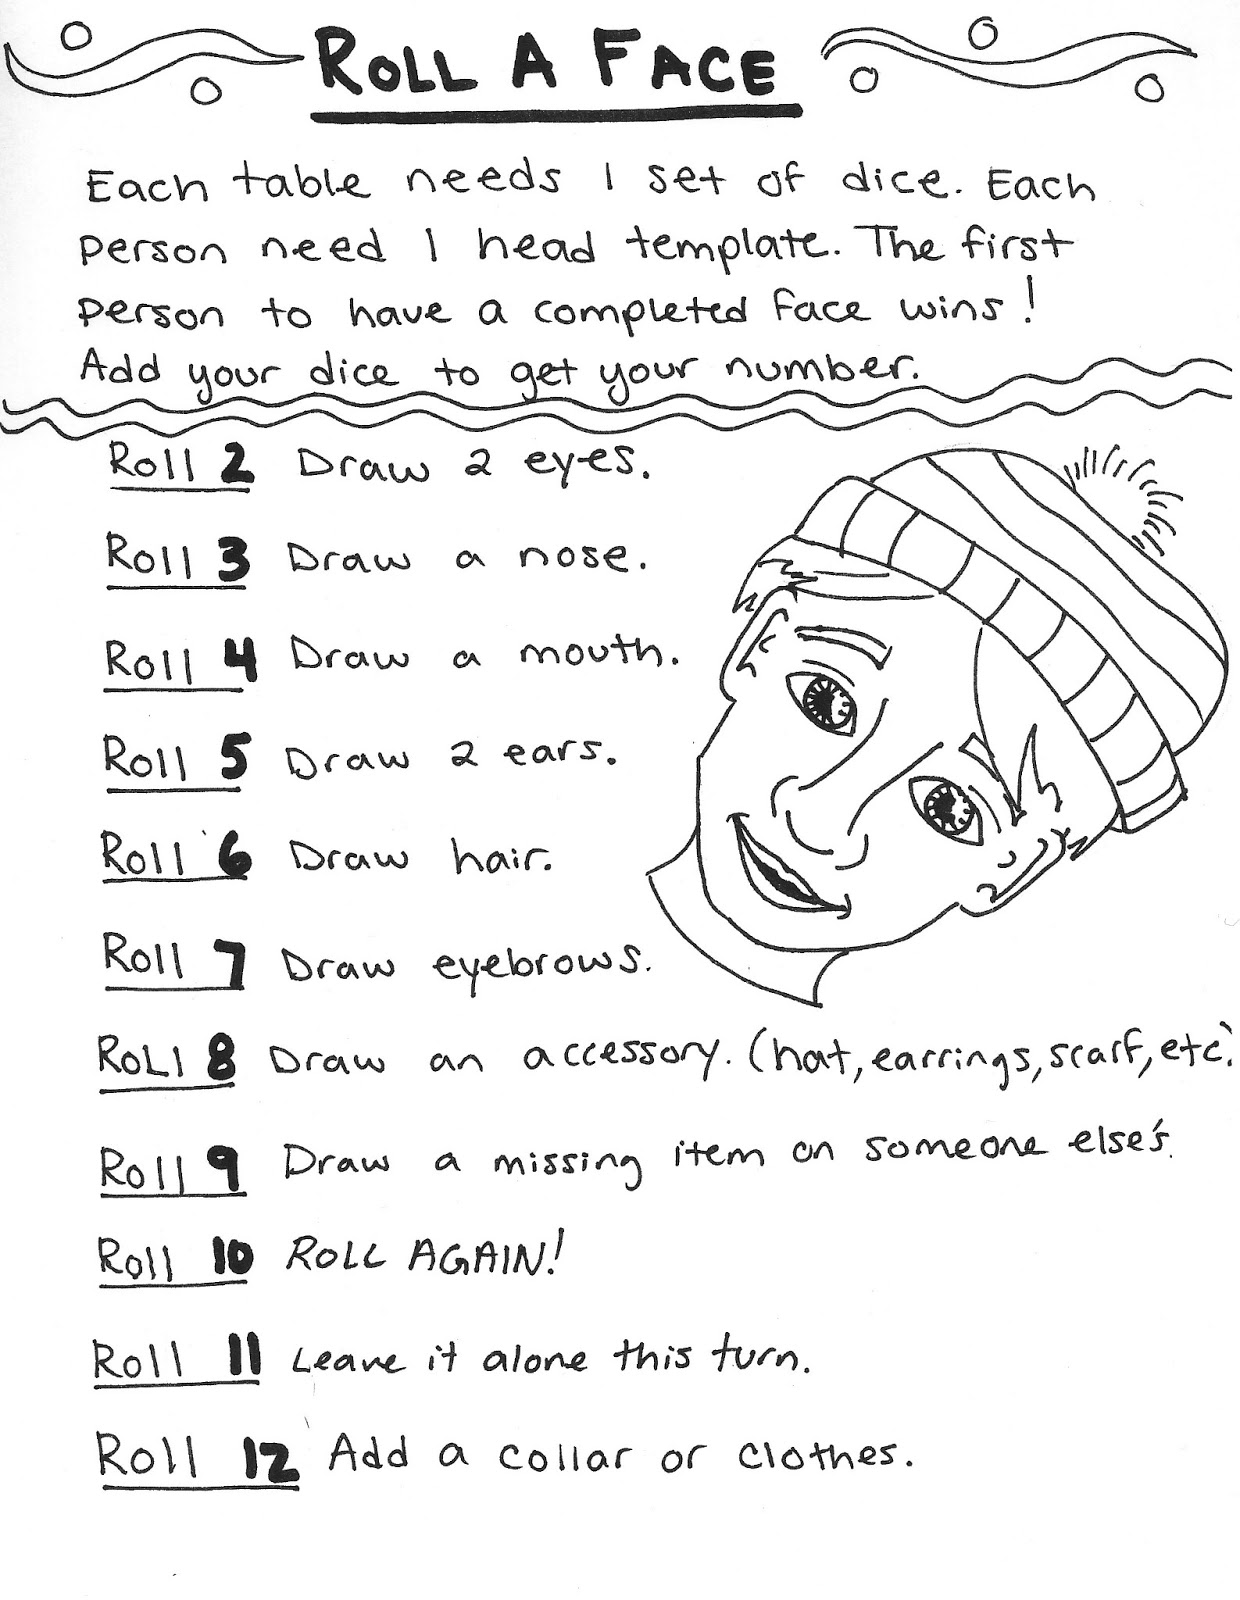 The Art Creature Roll A Face Game